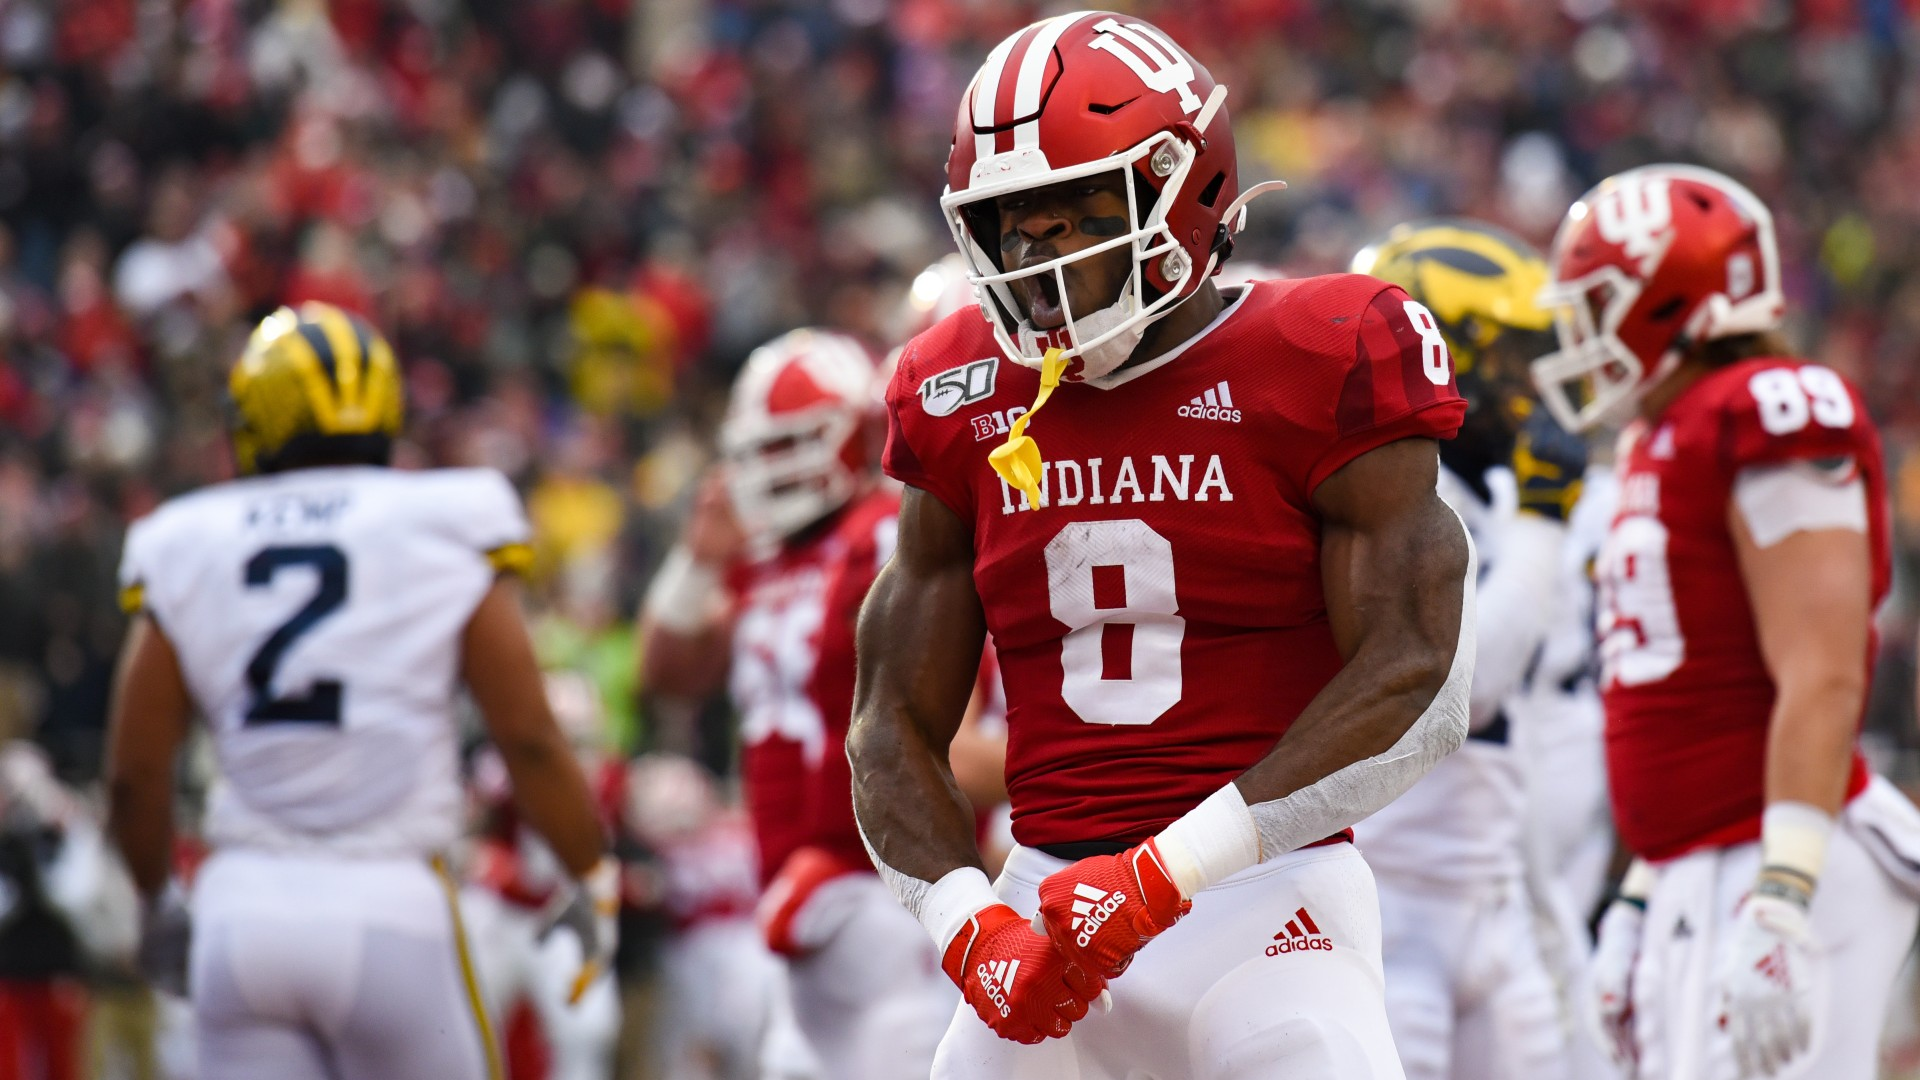 Michigan vs. Indiana Odds & Picks: Betting Value on the Over/Under for Saturday's Top 25 Big Ten Matchup (Nov. 7) article feature image